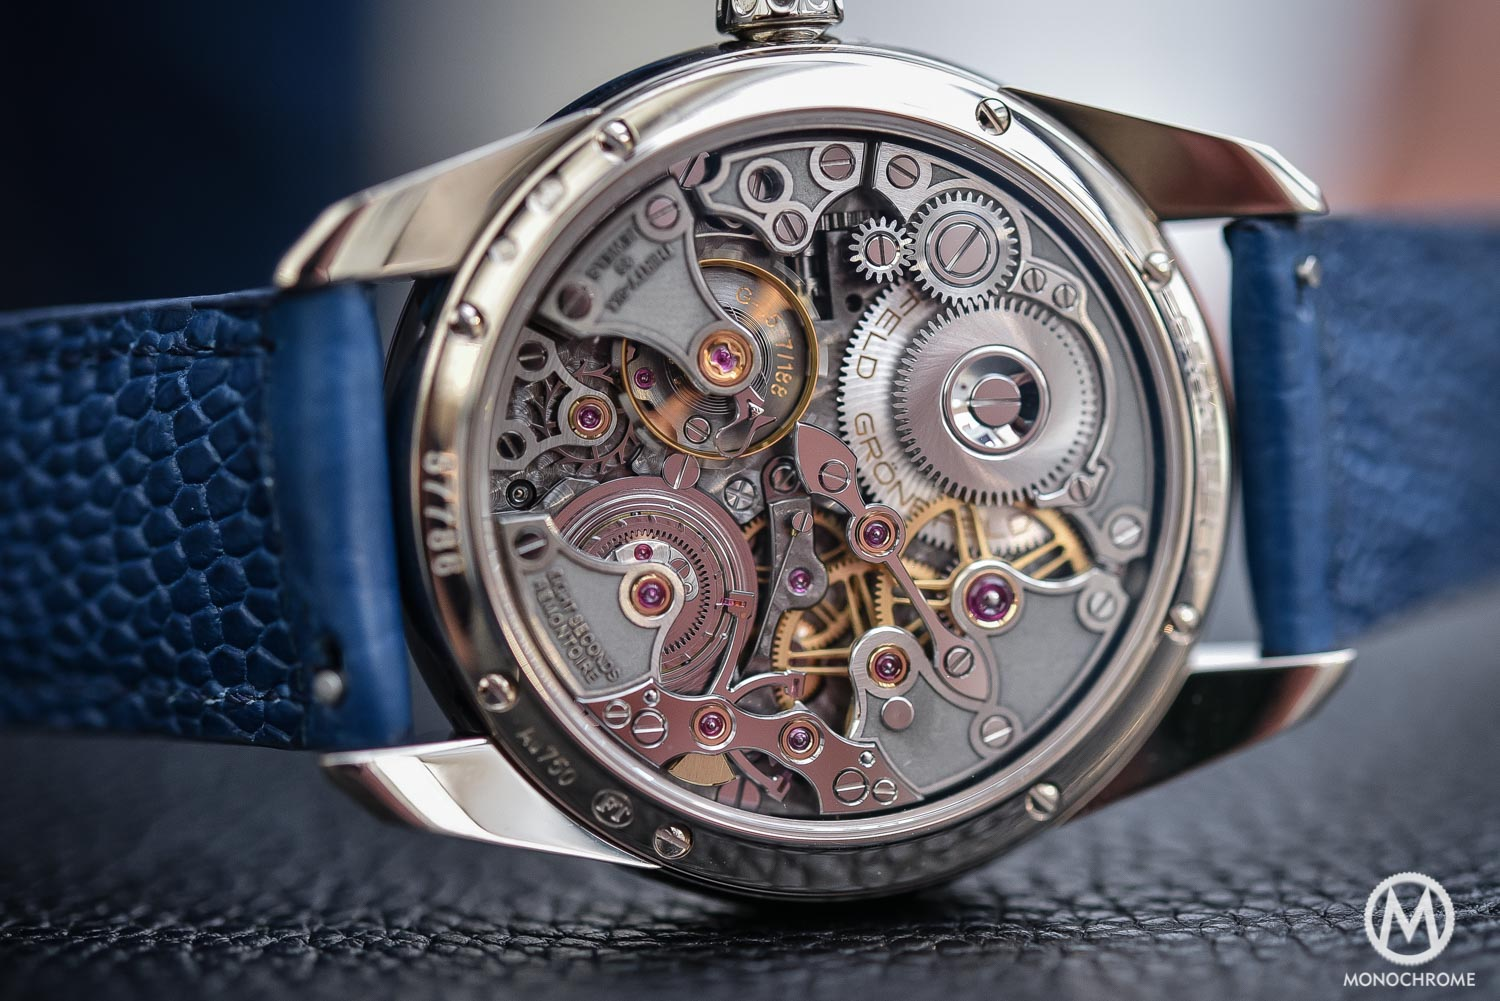 Top-5-Watches-from-Baselworld-2016-Gronefeld-1941-Remontoire-Top-5-From-Baselworld-2016-Frank-2